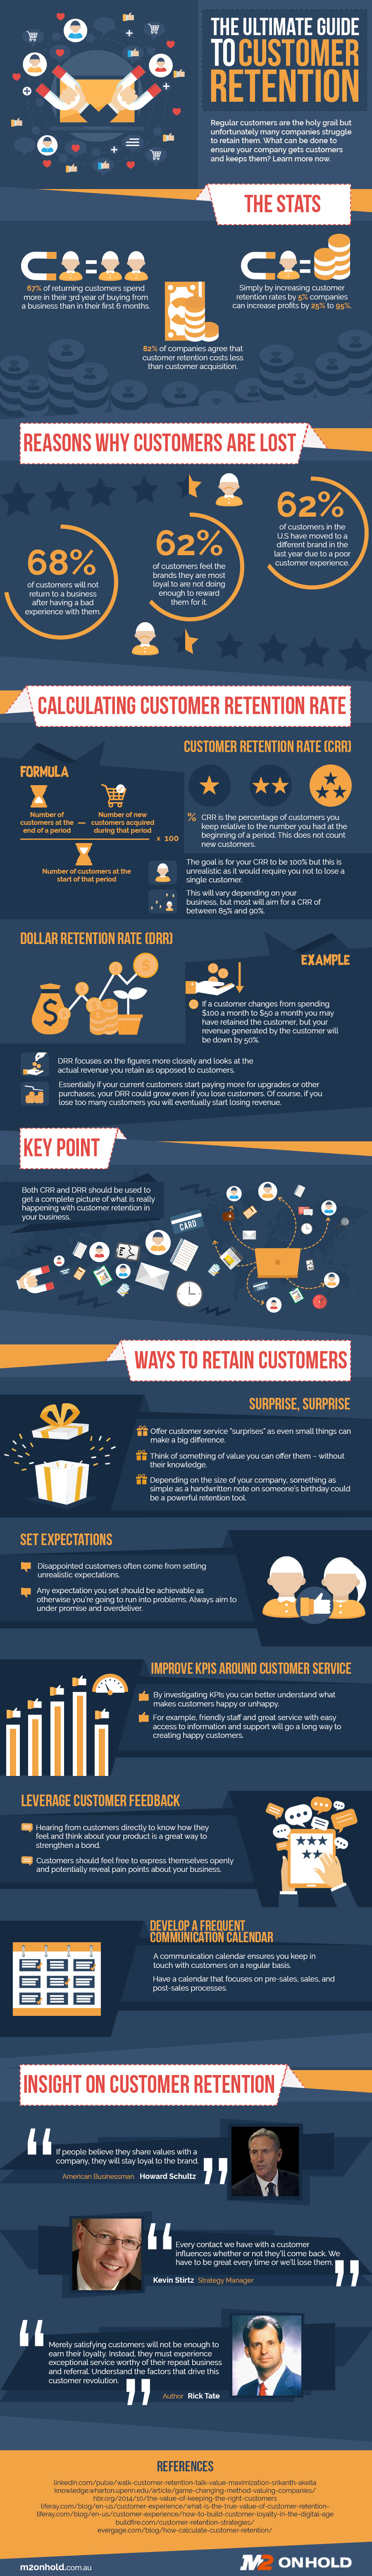 Infographic: The Ultimate Guide to Customer Retention